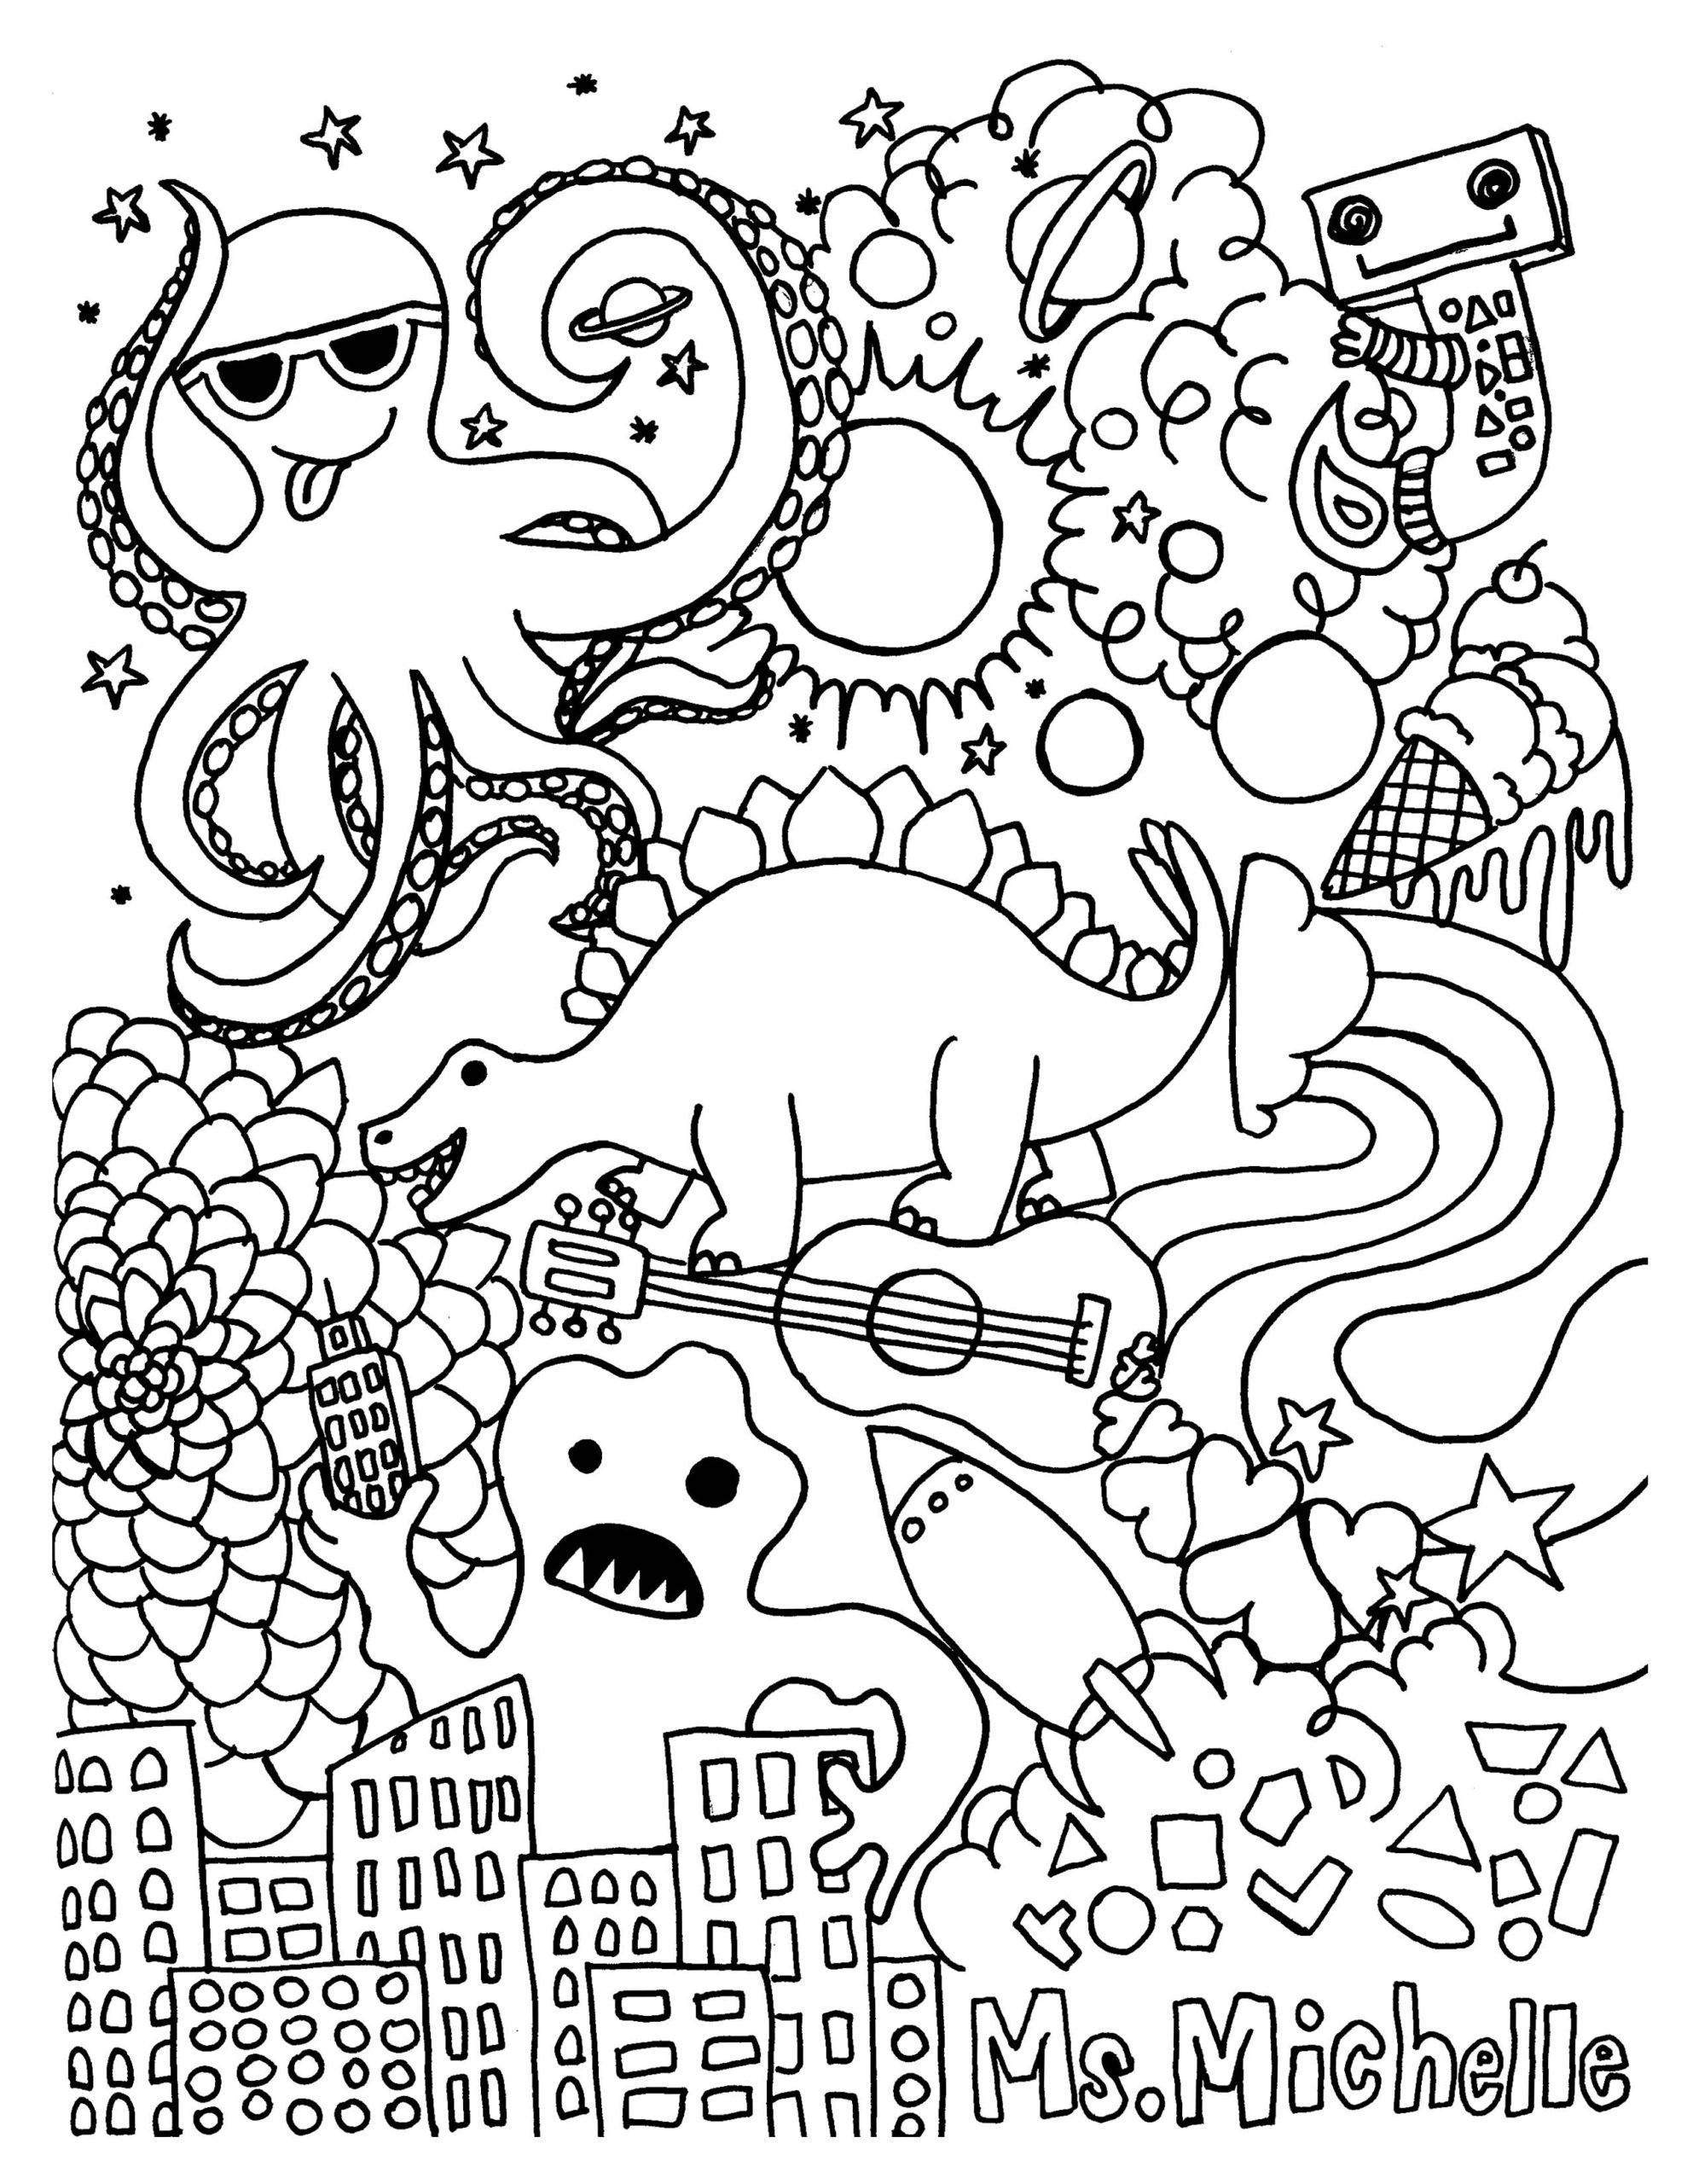 3rd Grade Coloring Worksheets Coloring Pages Free Printable Activity Pages for Kids